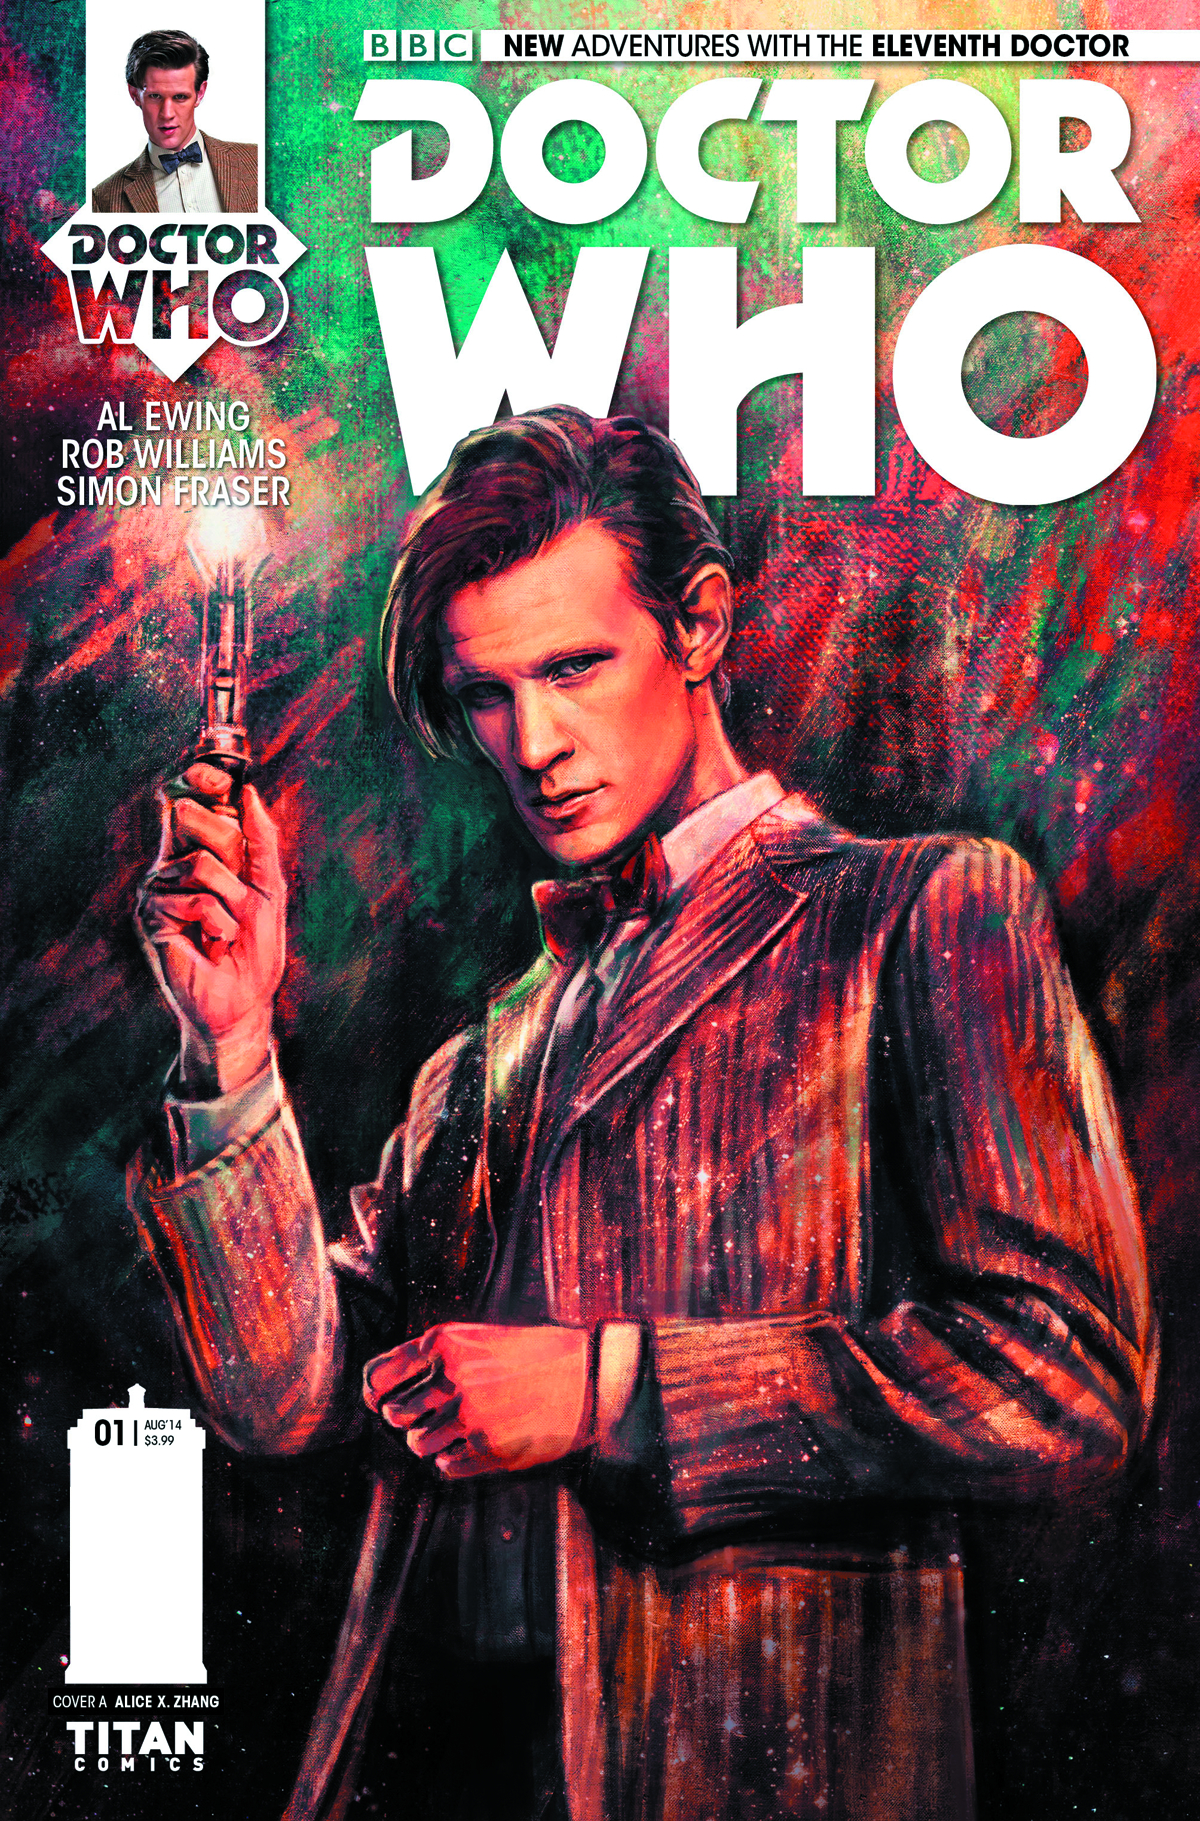 DOCTOR WHO 11TH #1 REG ZHANG